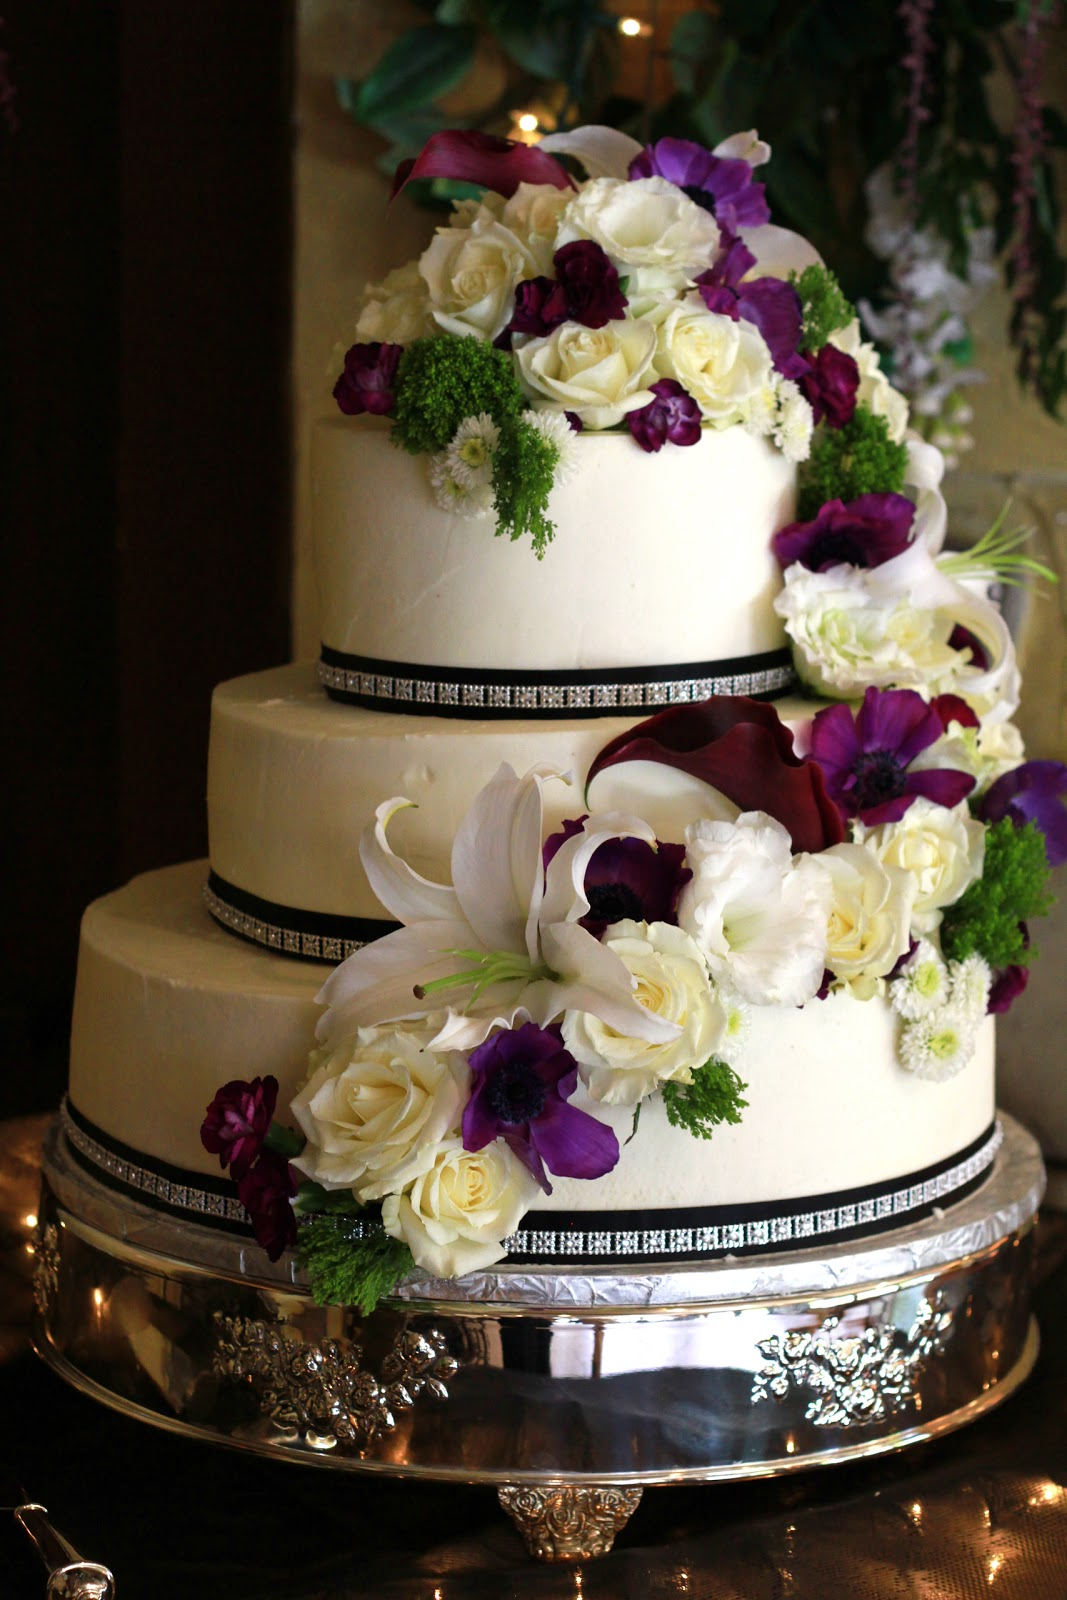 exquisite cookies 3 tier wedding cake with fresh flowers. Black Bedroom Furniture Sets. Home Design Ideas